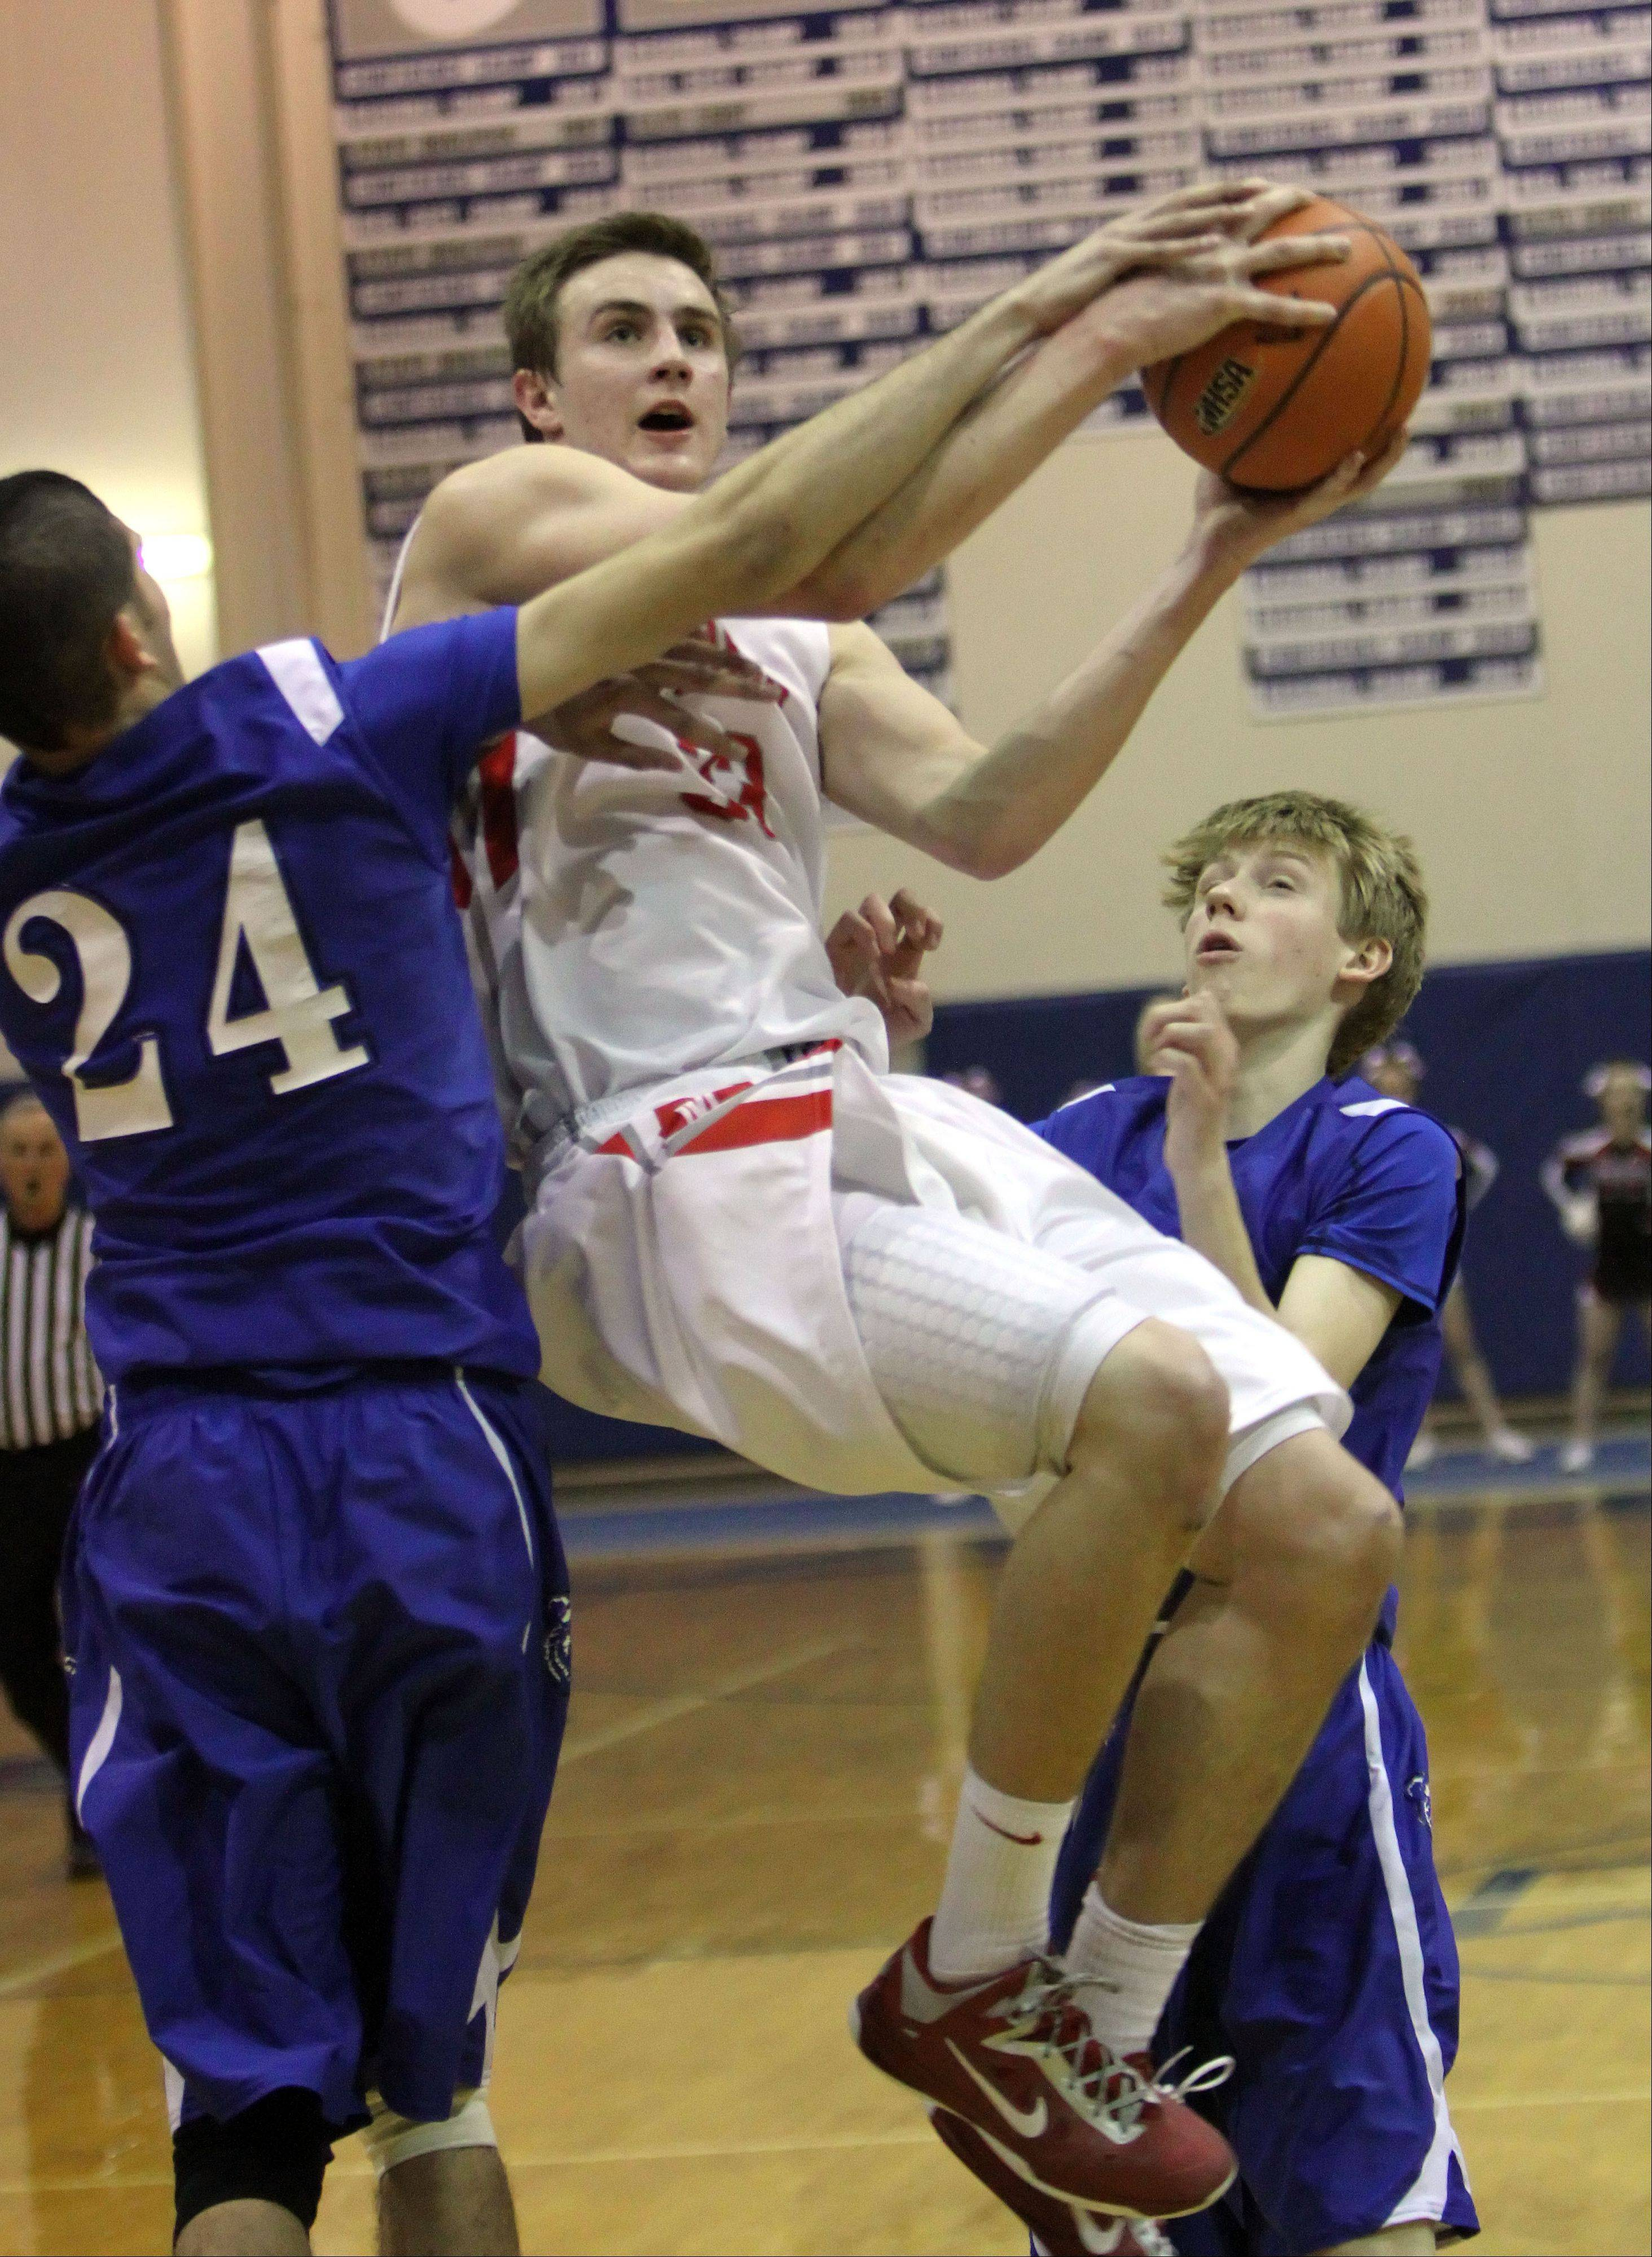 Mundelein's Sean O'Brien, left, drives on Lake Zurich's Shahzaad Khan.